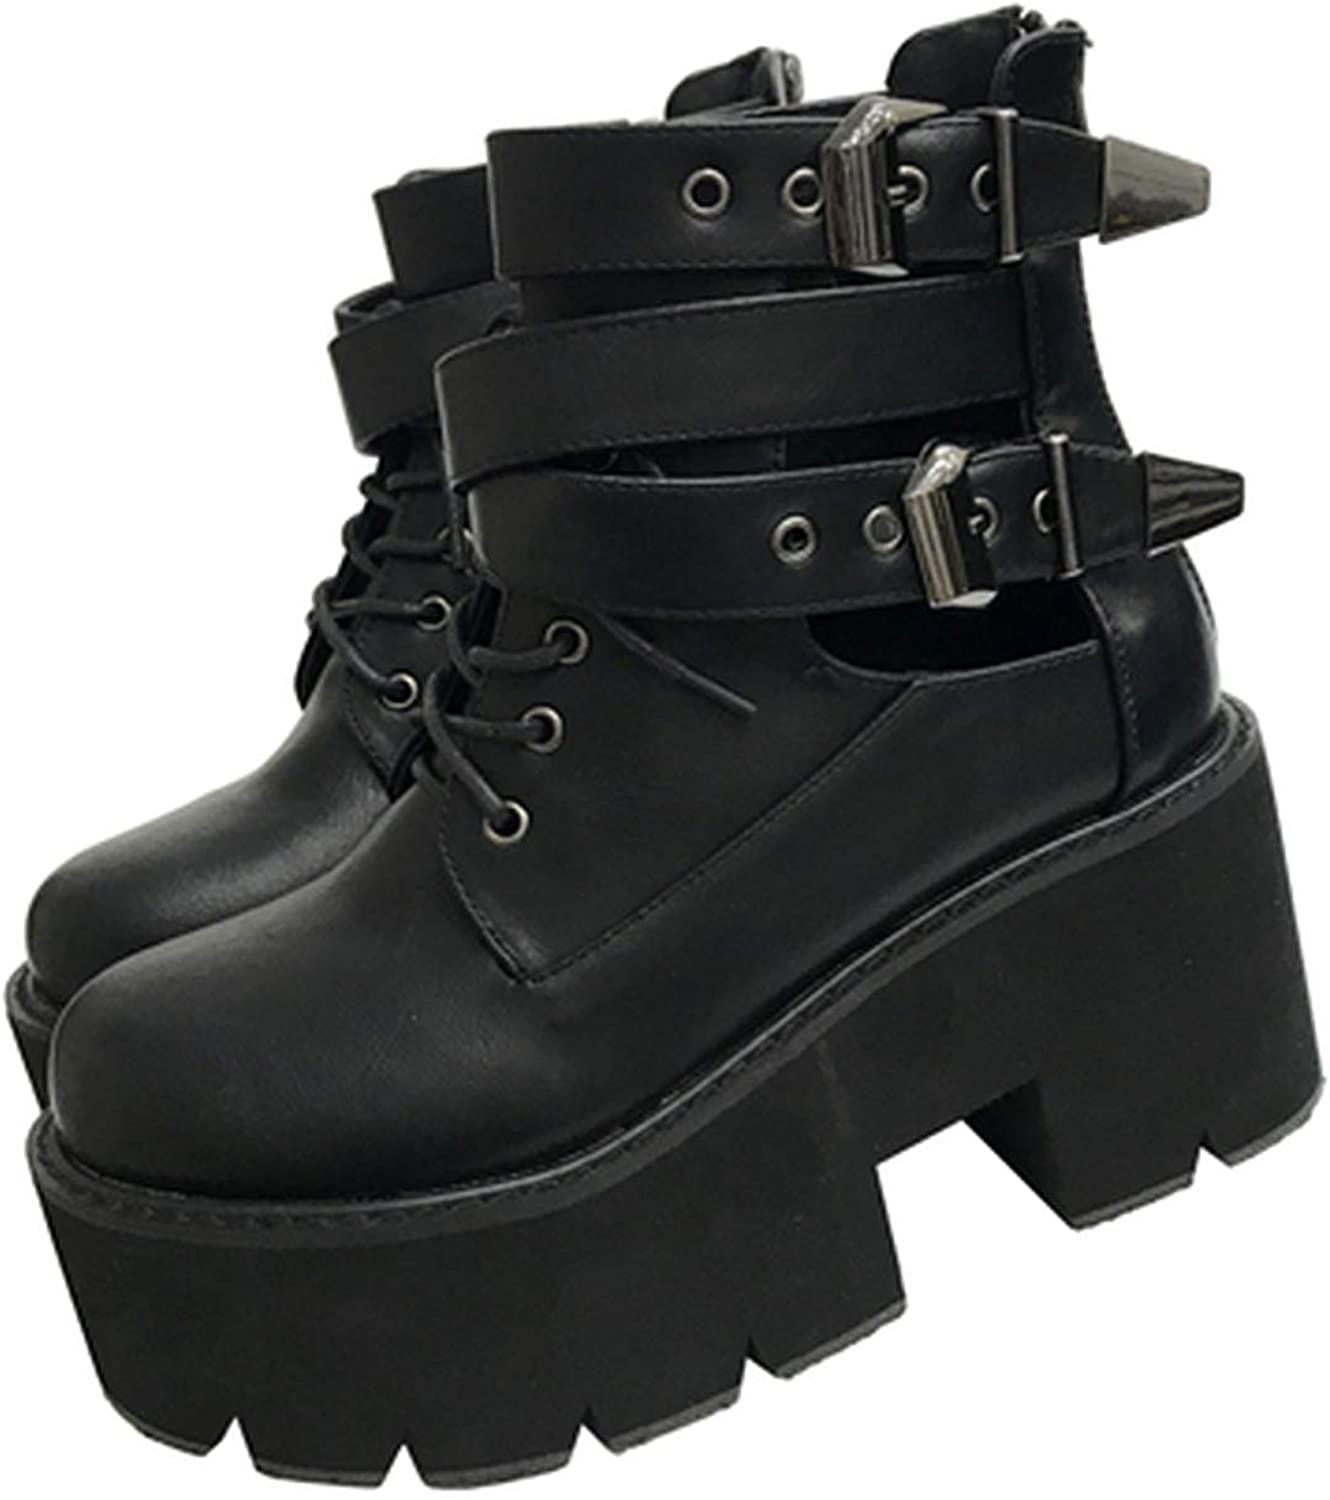 Pretty-sexy-toys Punk Boots Buckle Bottes women Platform Boots High Heel Winter Autumn shoes Motorcycle Boots Women Fashion Fall Boots,Black,6